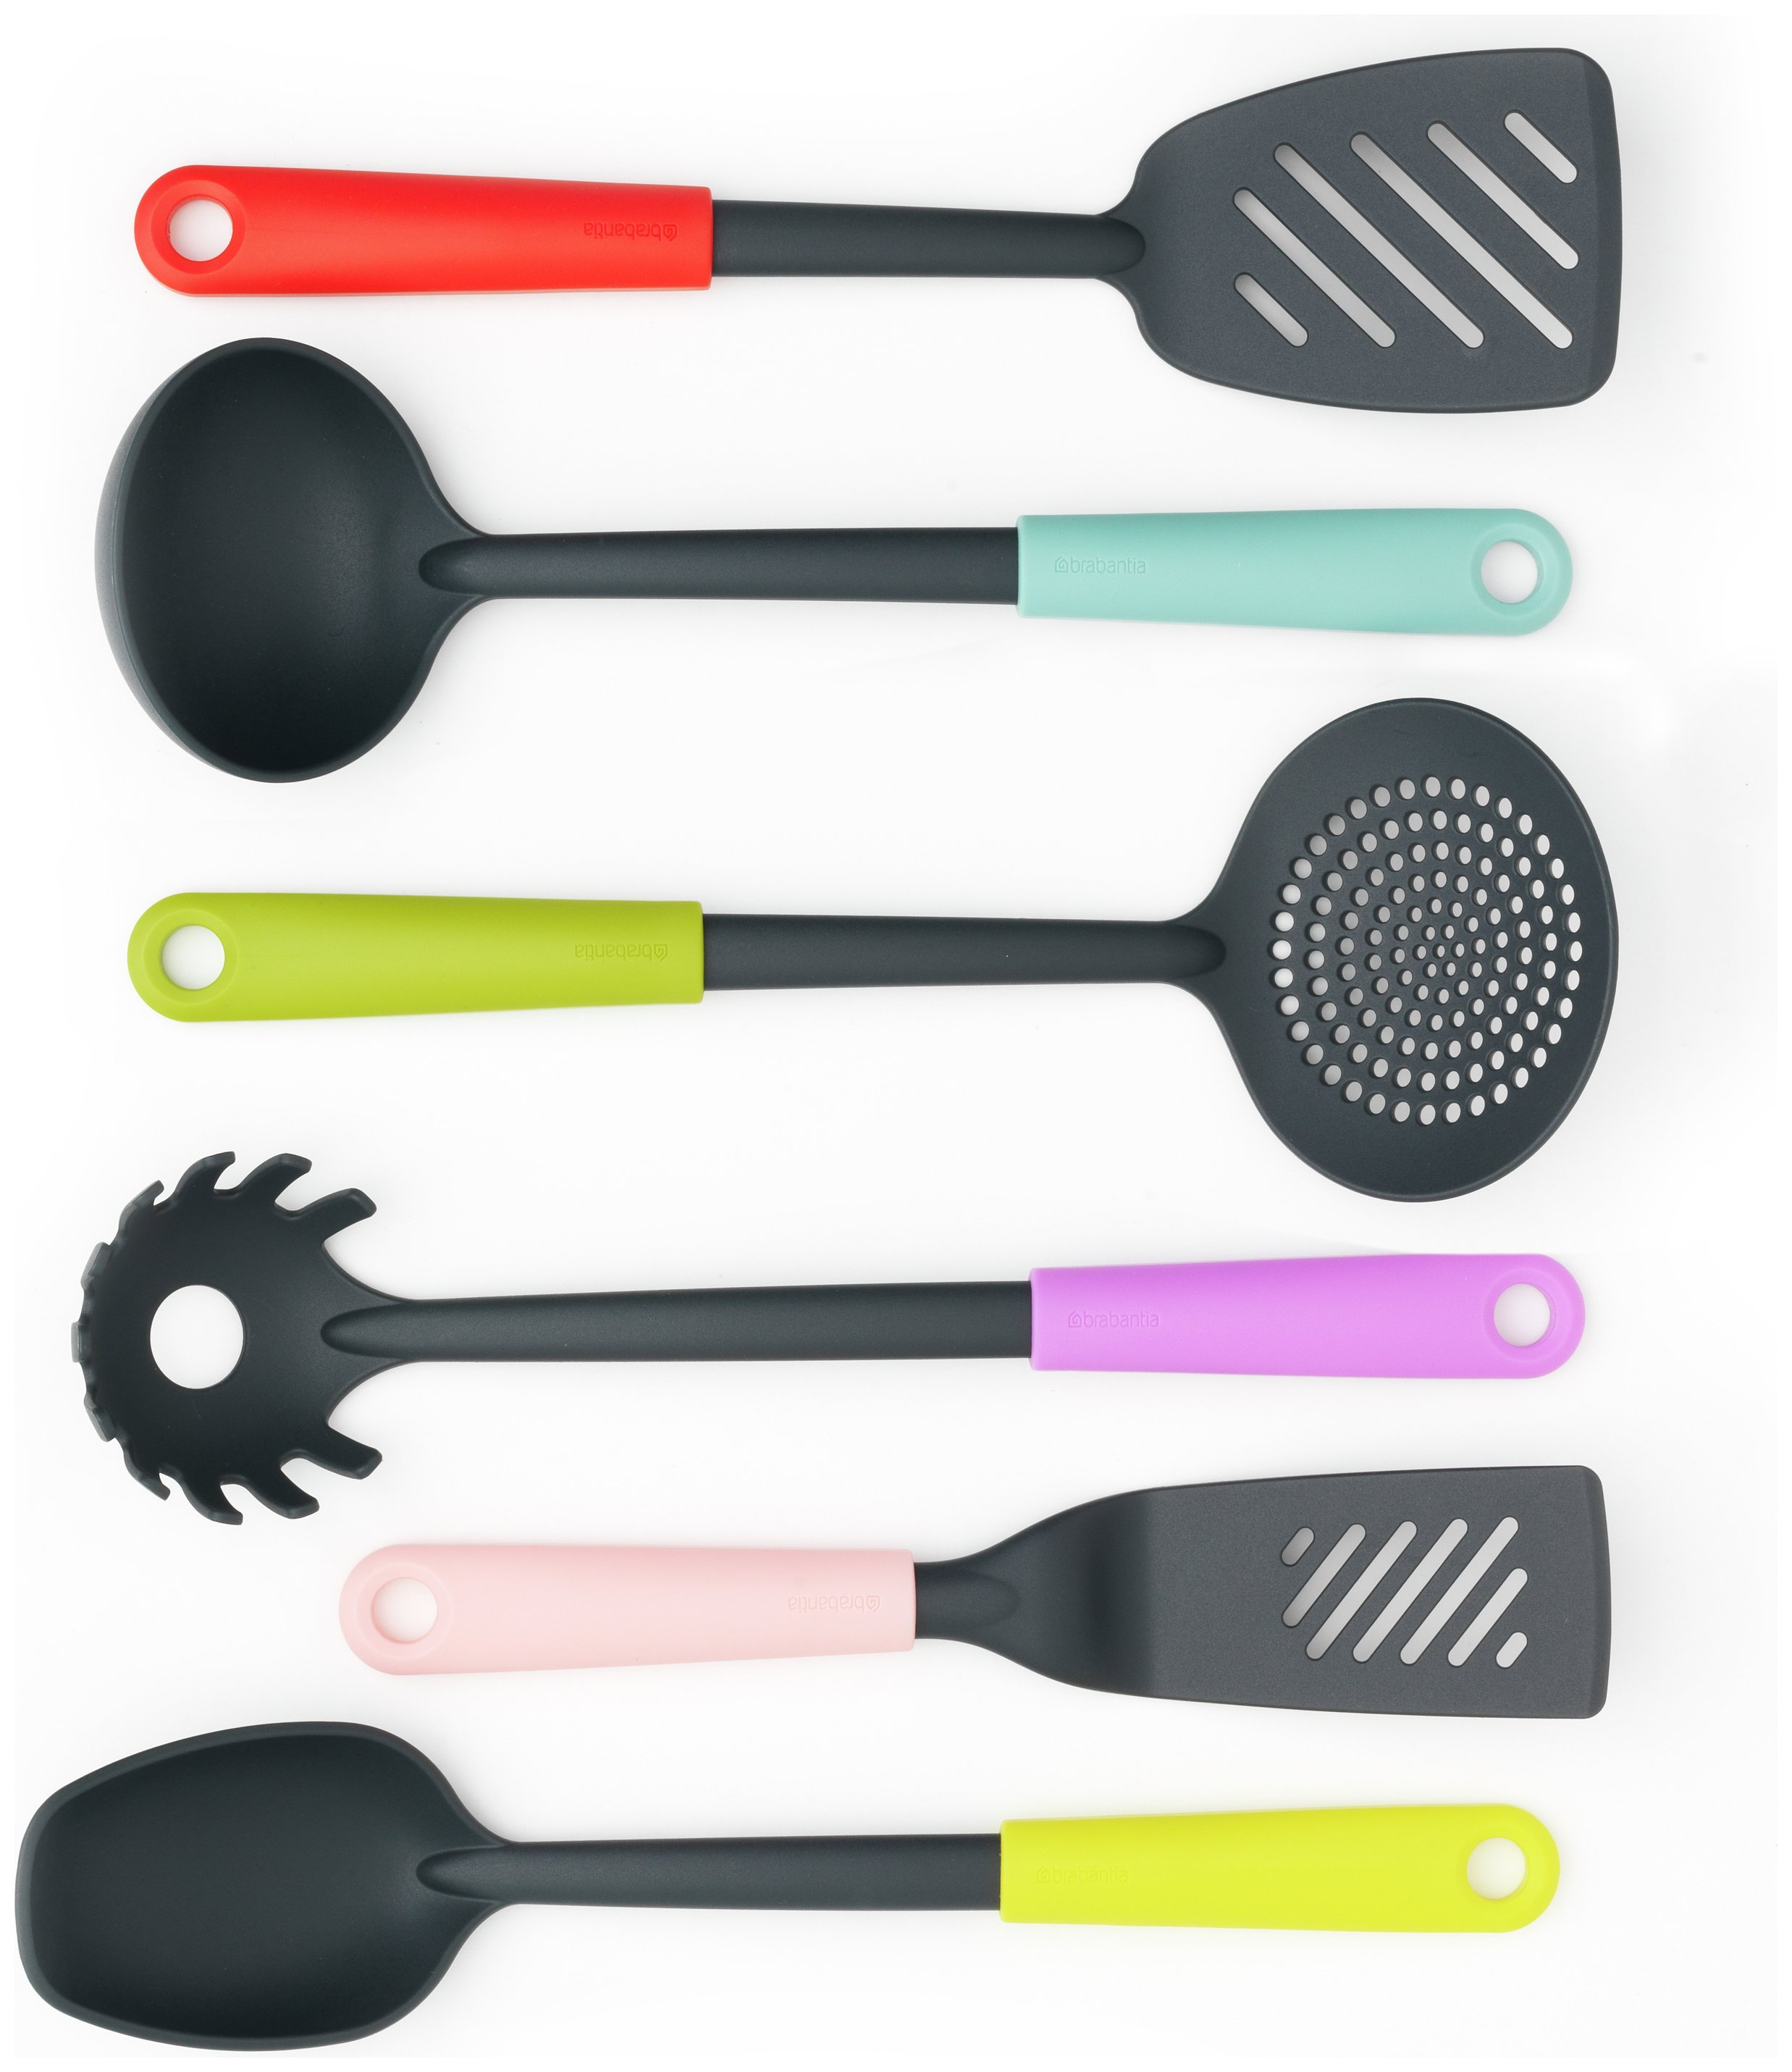 Brabantia 6 Piece Kitchen Utensils Set - Multicoloured